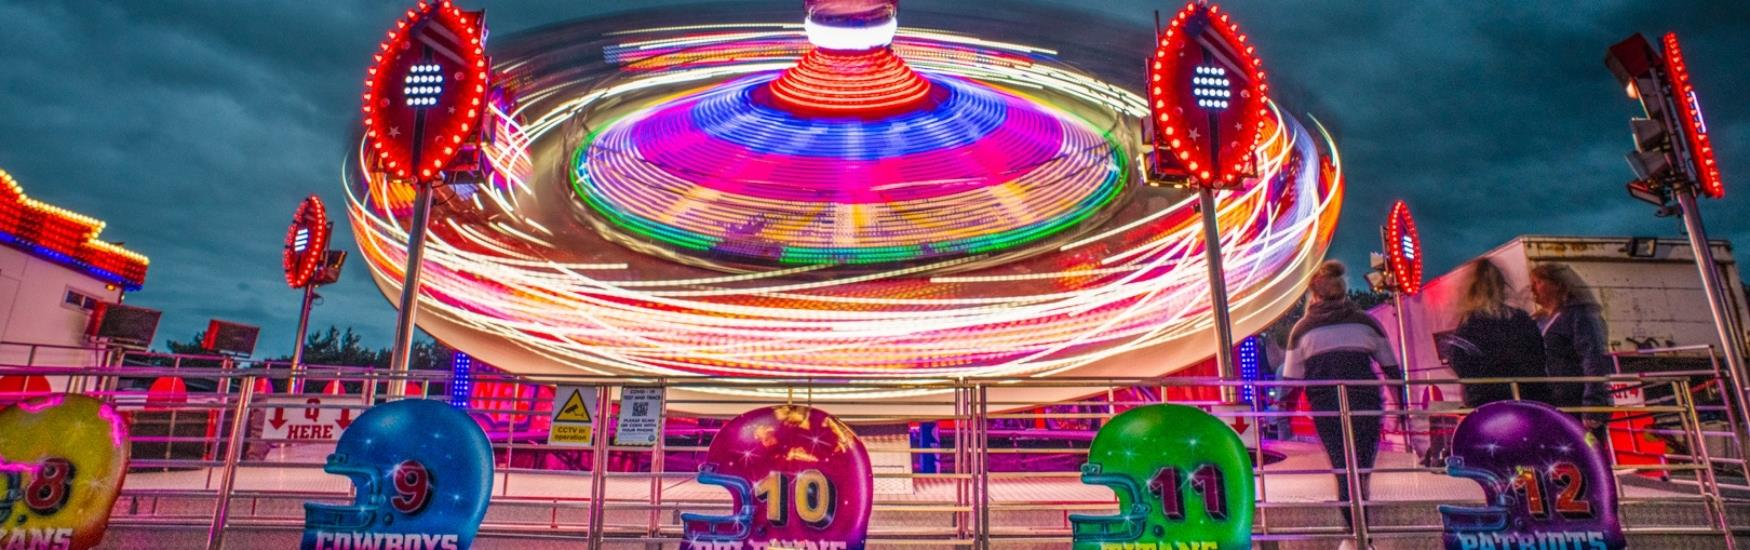 Neon lights illuminate the spinning ride at the funfair in Bournemouth